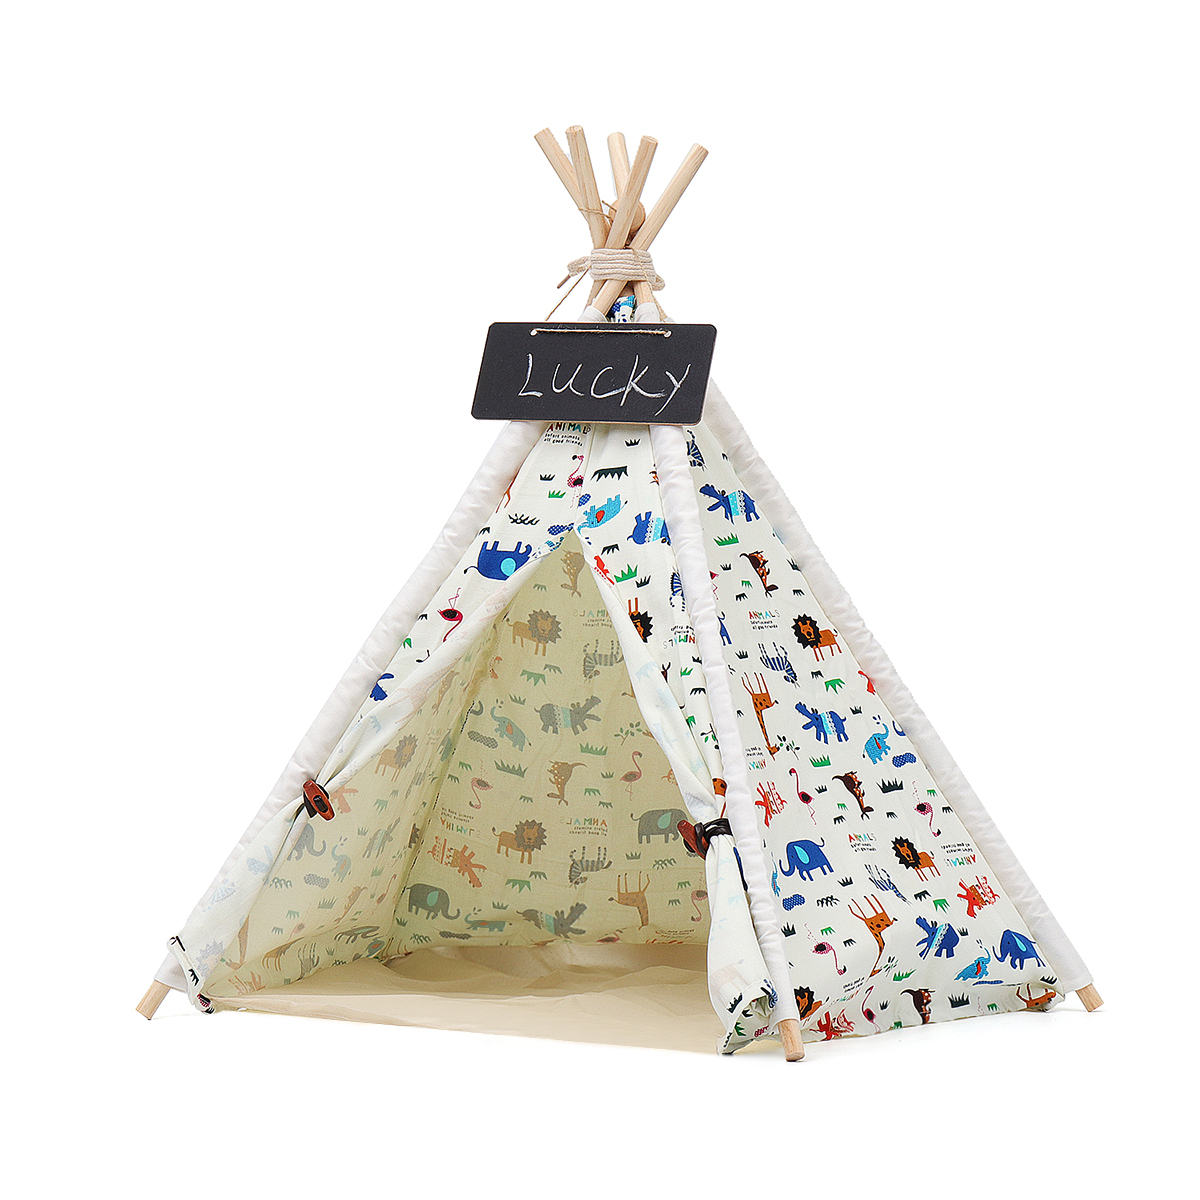 Folding Pet <font><b>Dog</b></font> House <font><b>Kennels</b></font> Washable Tent Puppy Cat Bed Indoor Outdoor Home Playing Teepee Tipi <font><b>Dog</b></font> Supplies Portable S/M/L image